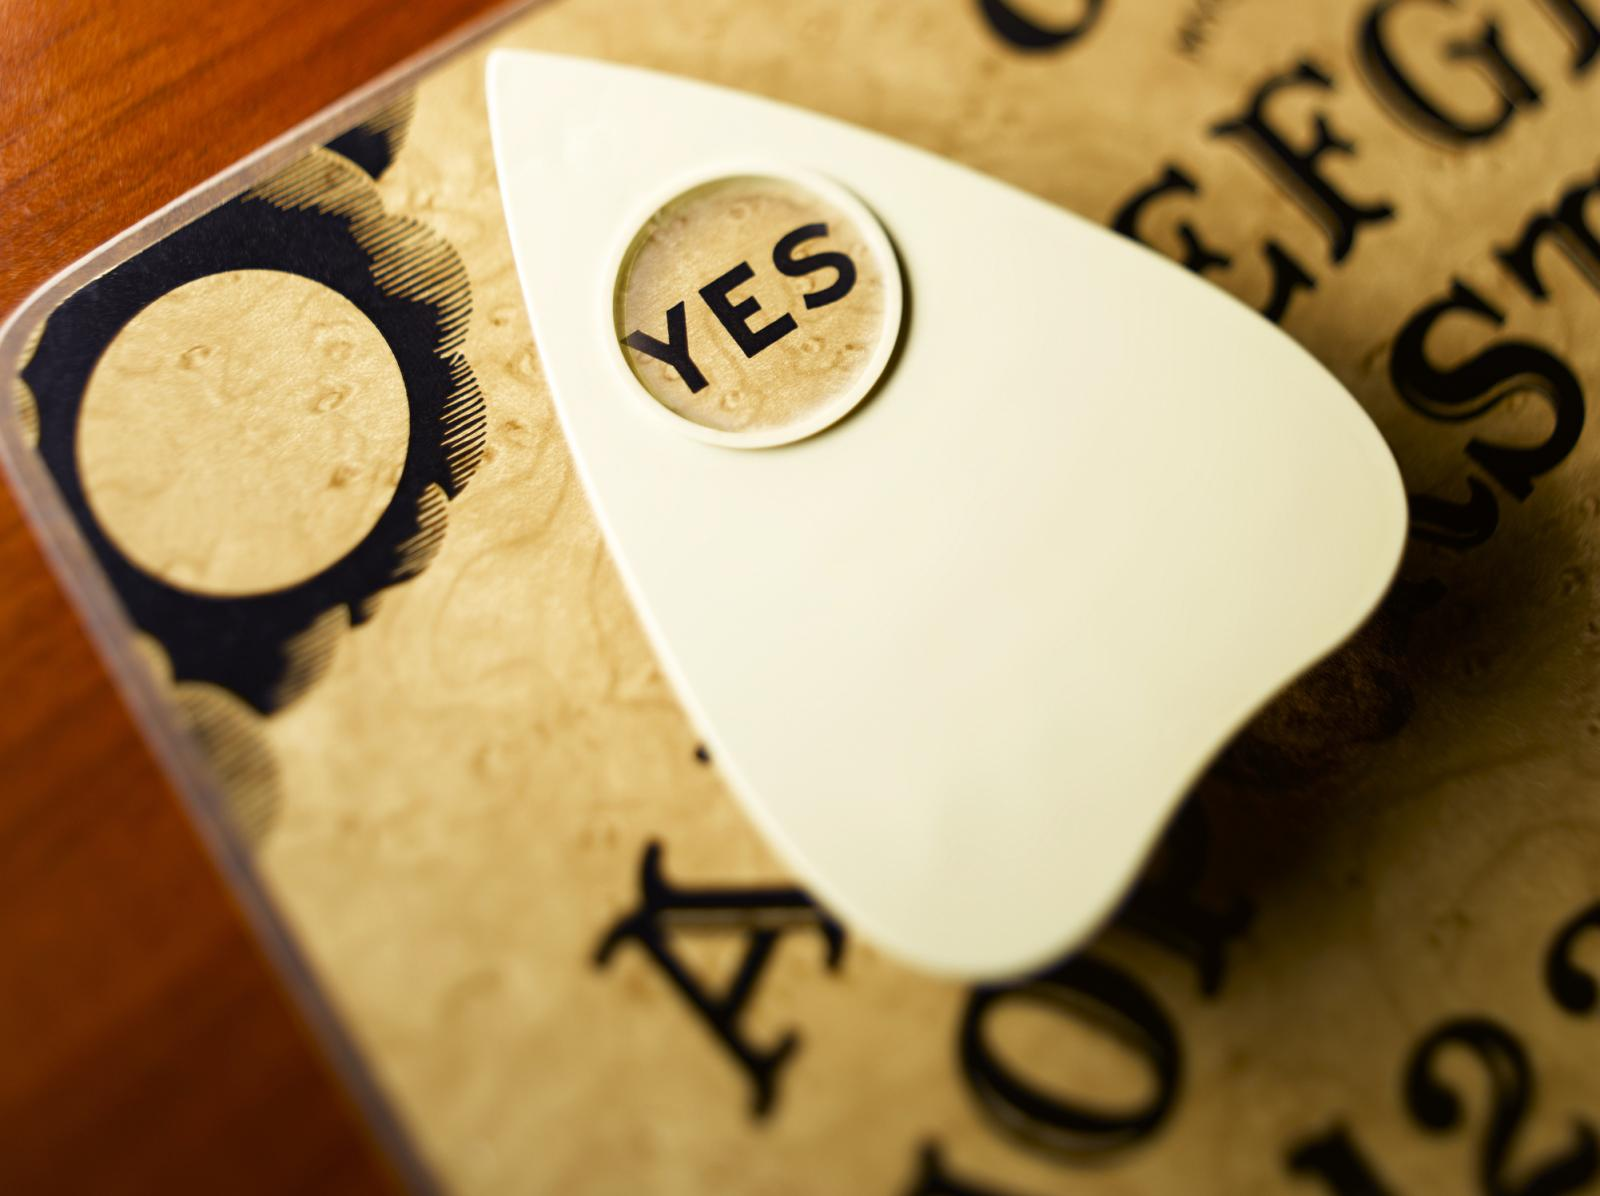 Planchette on talking board highlighting word yes